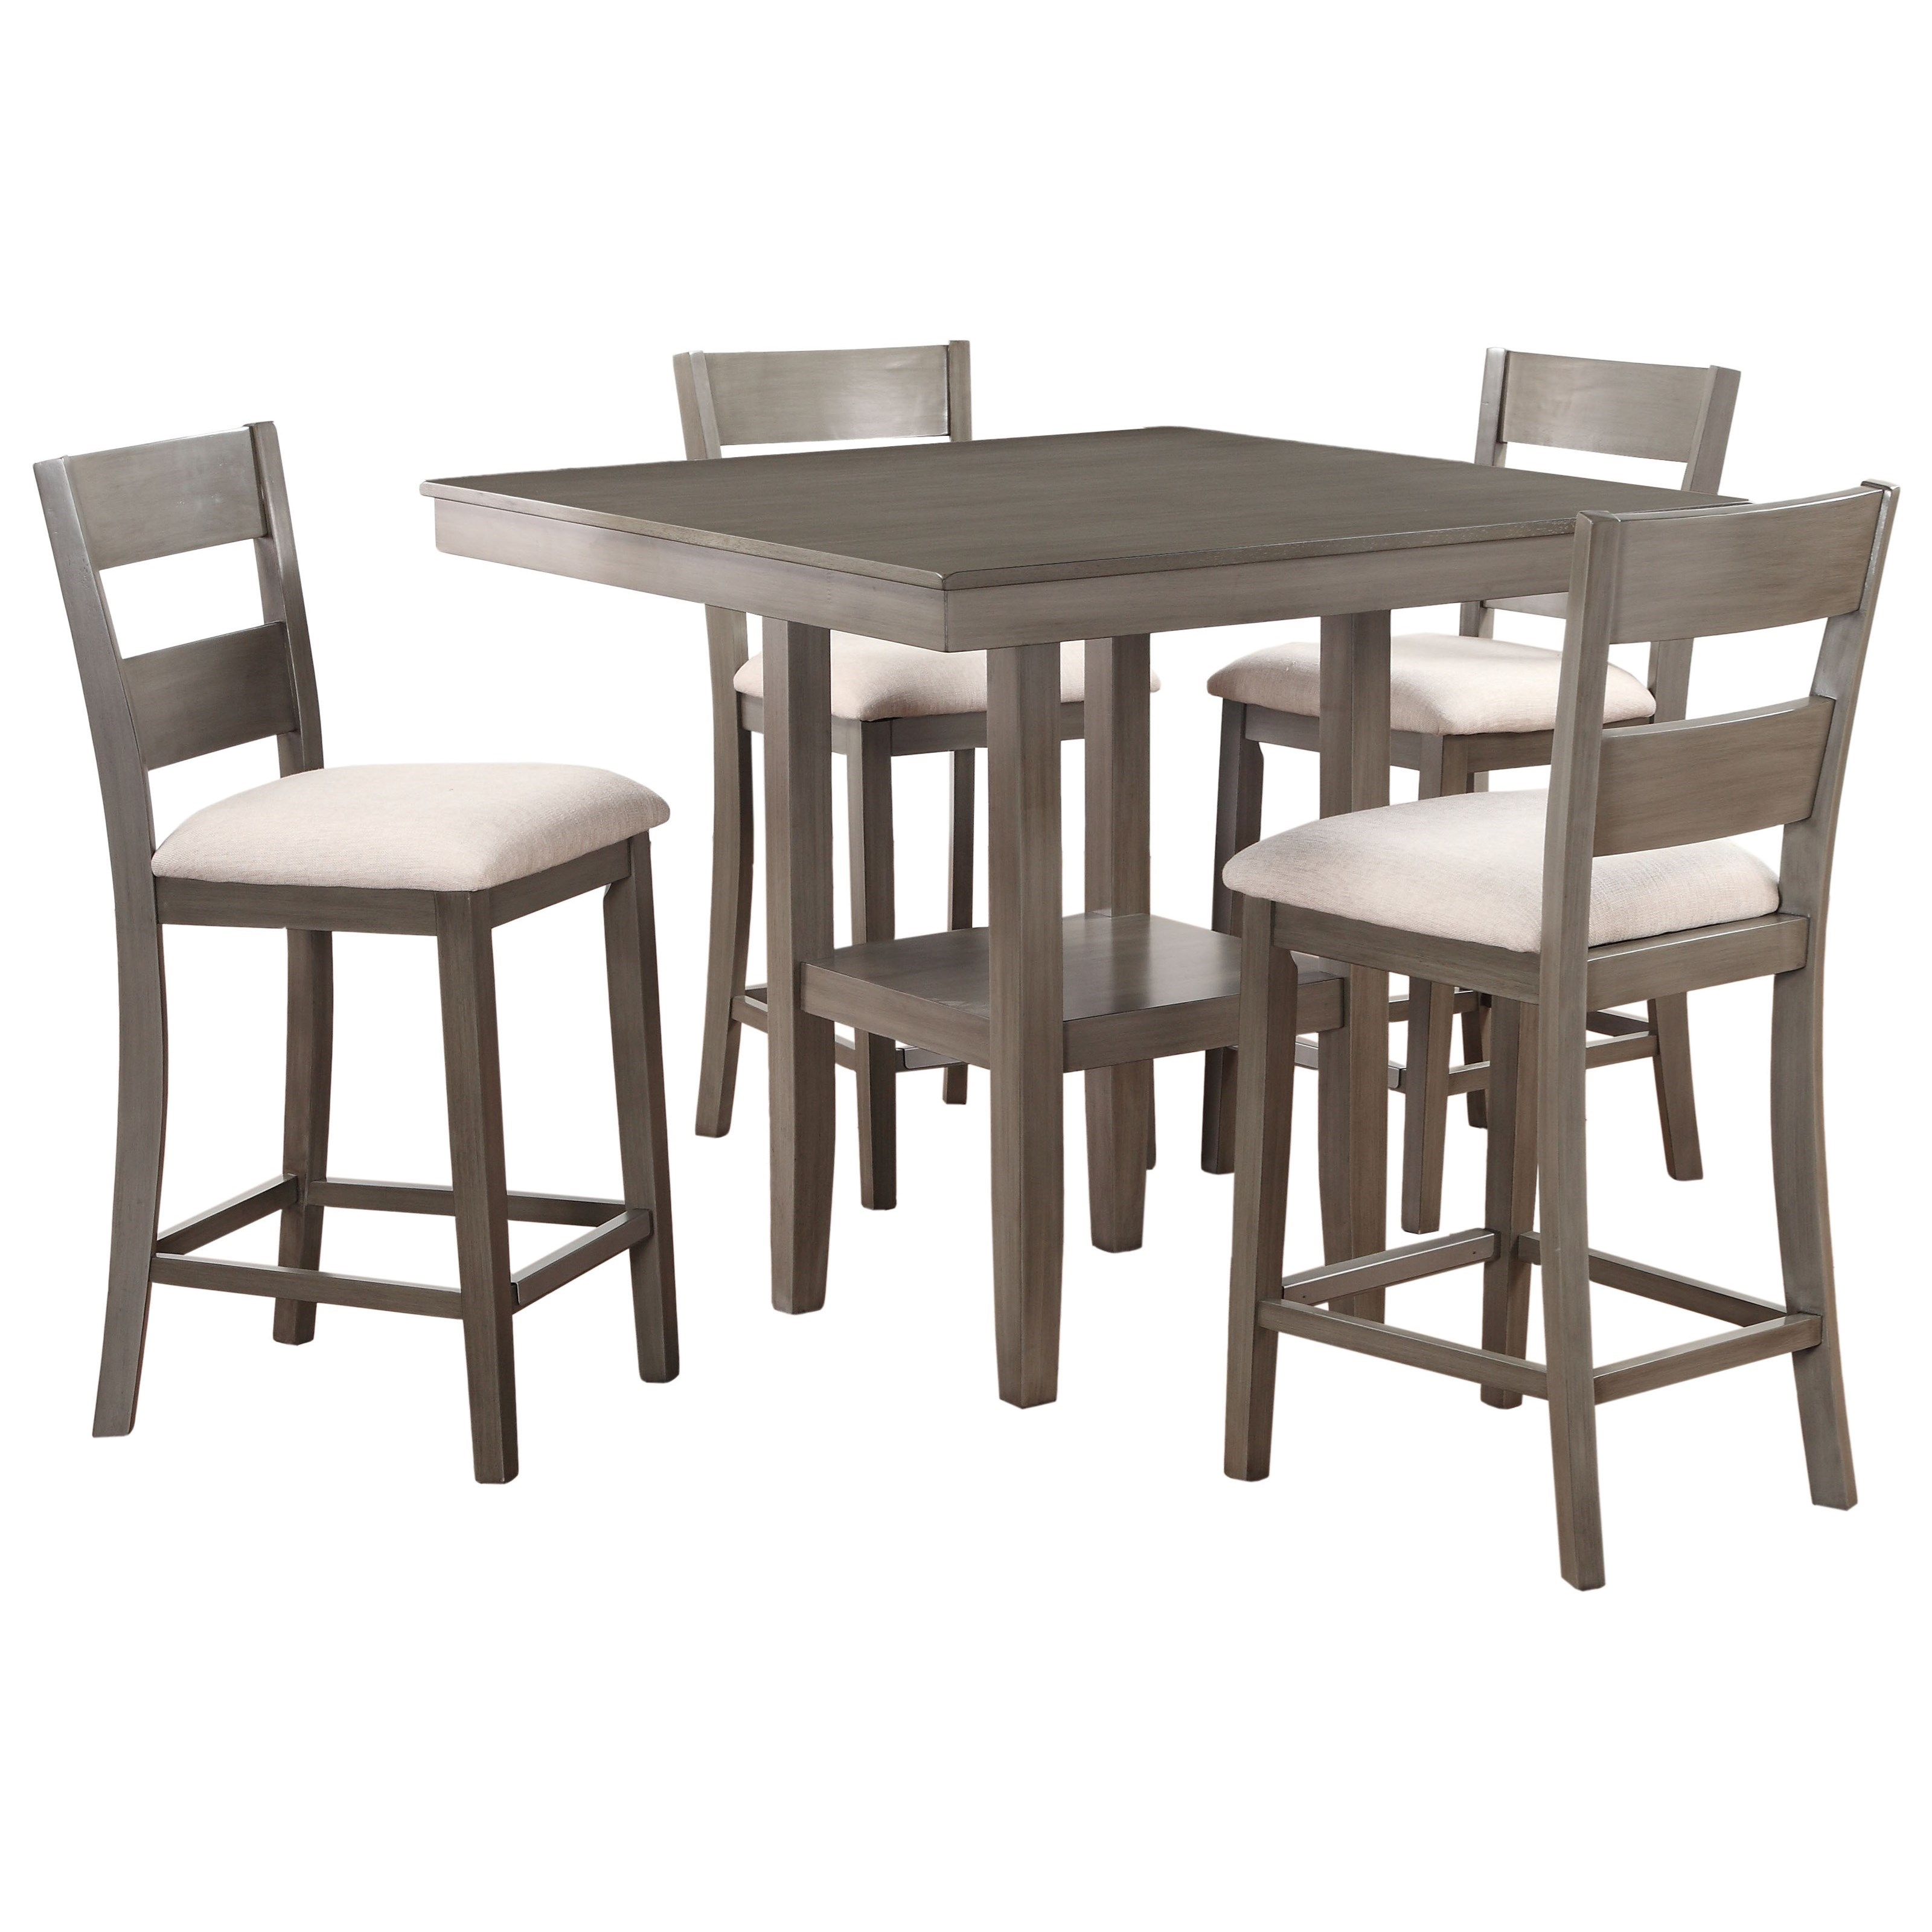 Standard furniture loft five piece table and chair set for Table and chair set